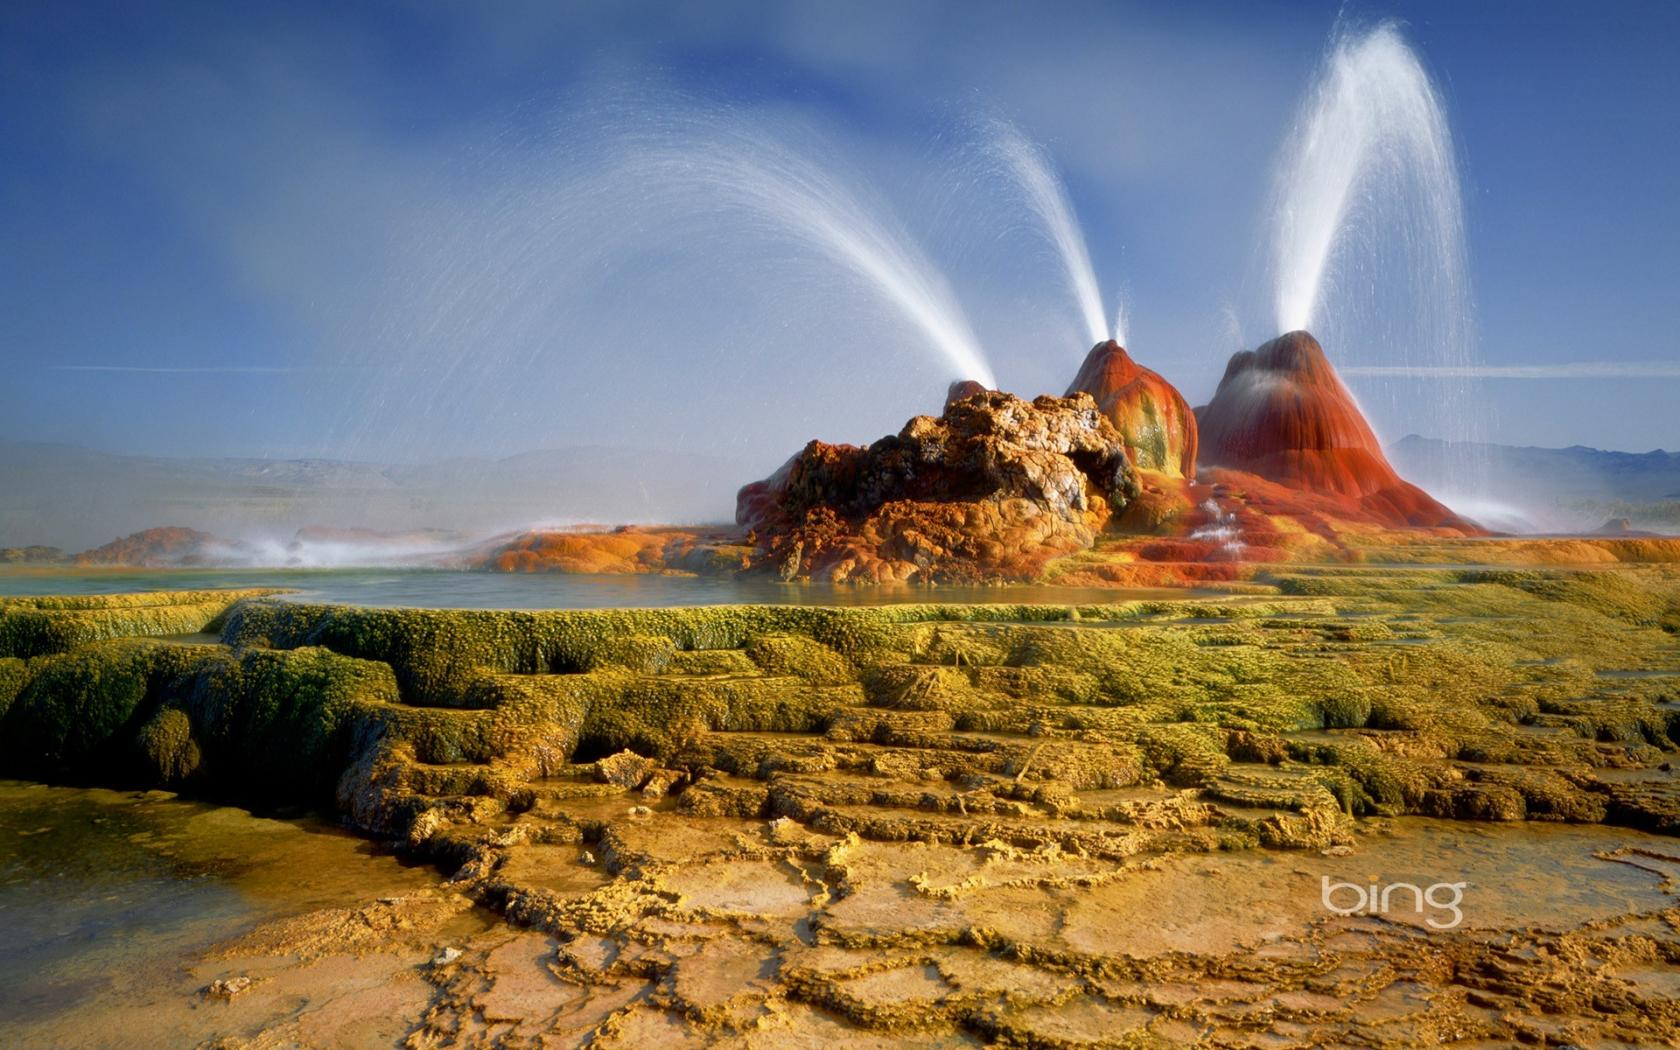 Bing yellowstone national park geysers nature wallpaper 82908 1680x1050